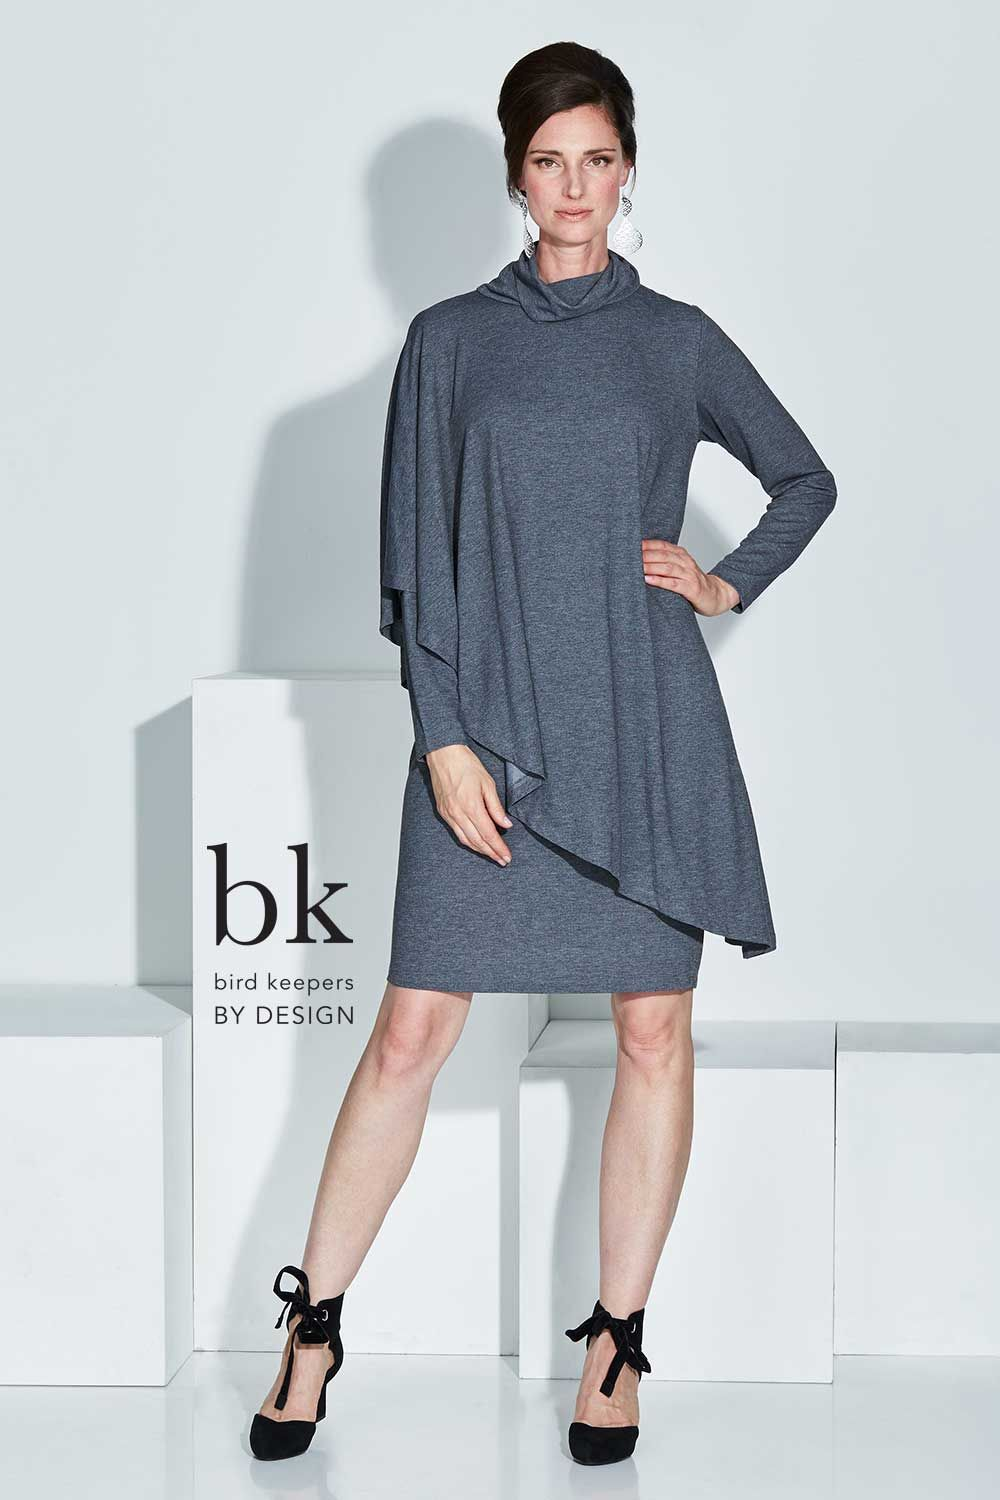 Bird keepers by design the cape dress capes dresses and cape dress